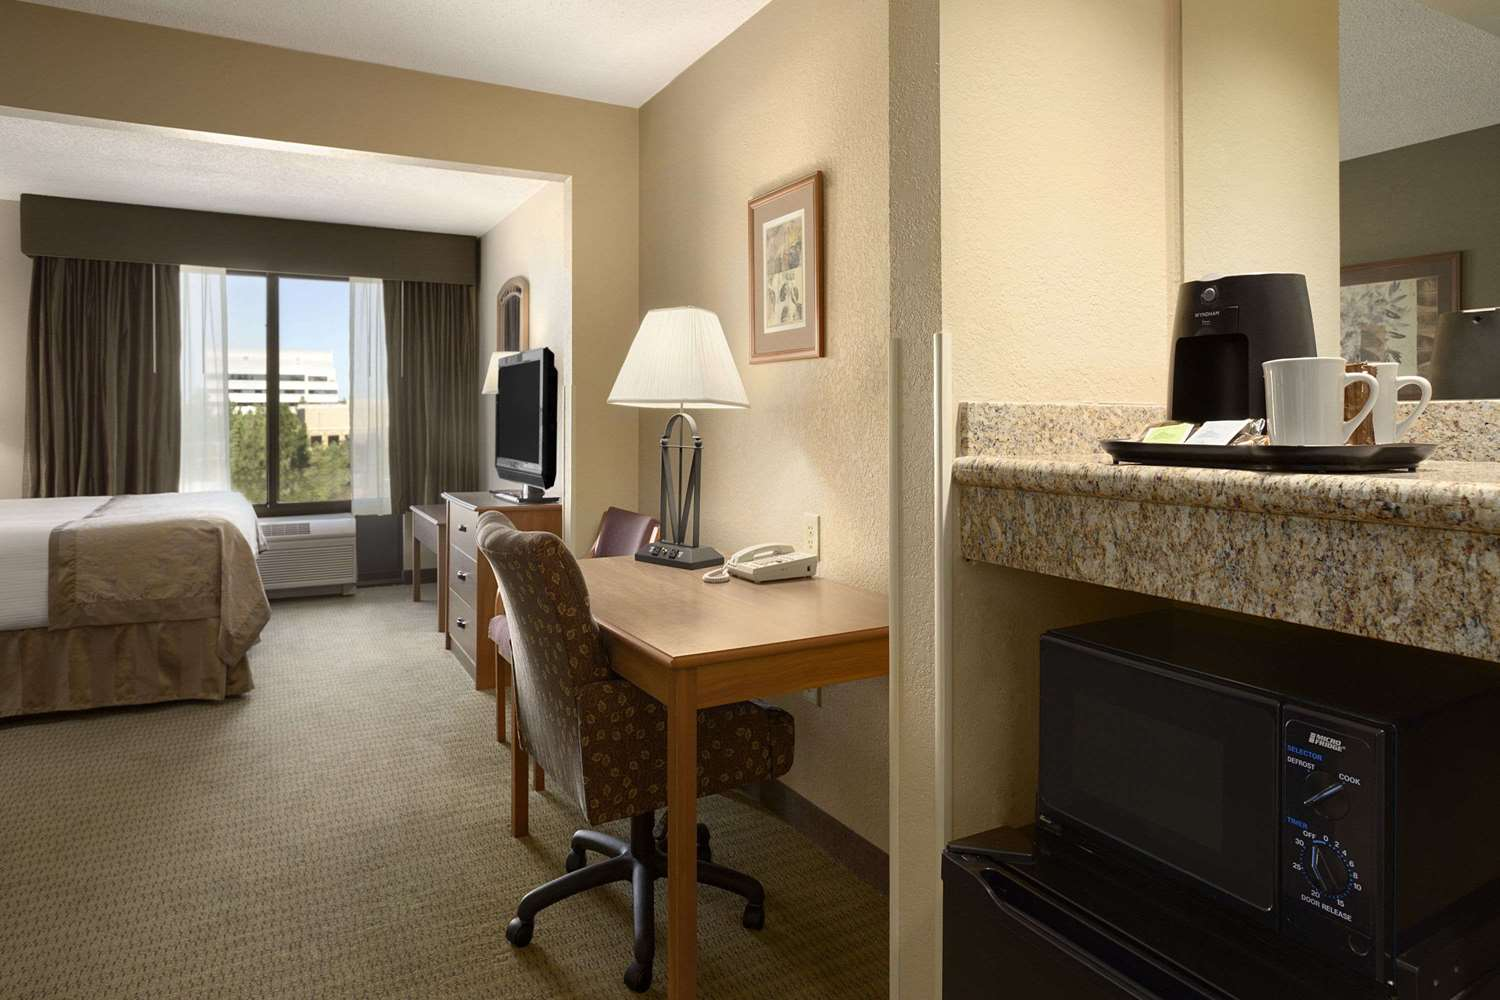 Wingate by Wyndham Hotel Little Rock, AR - See Discounts